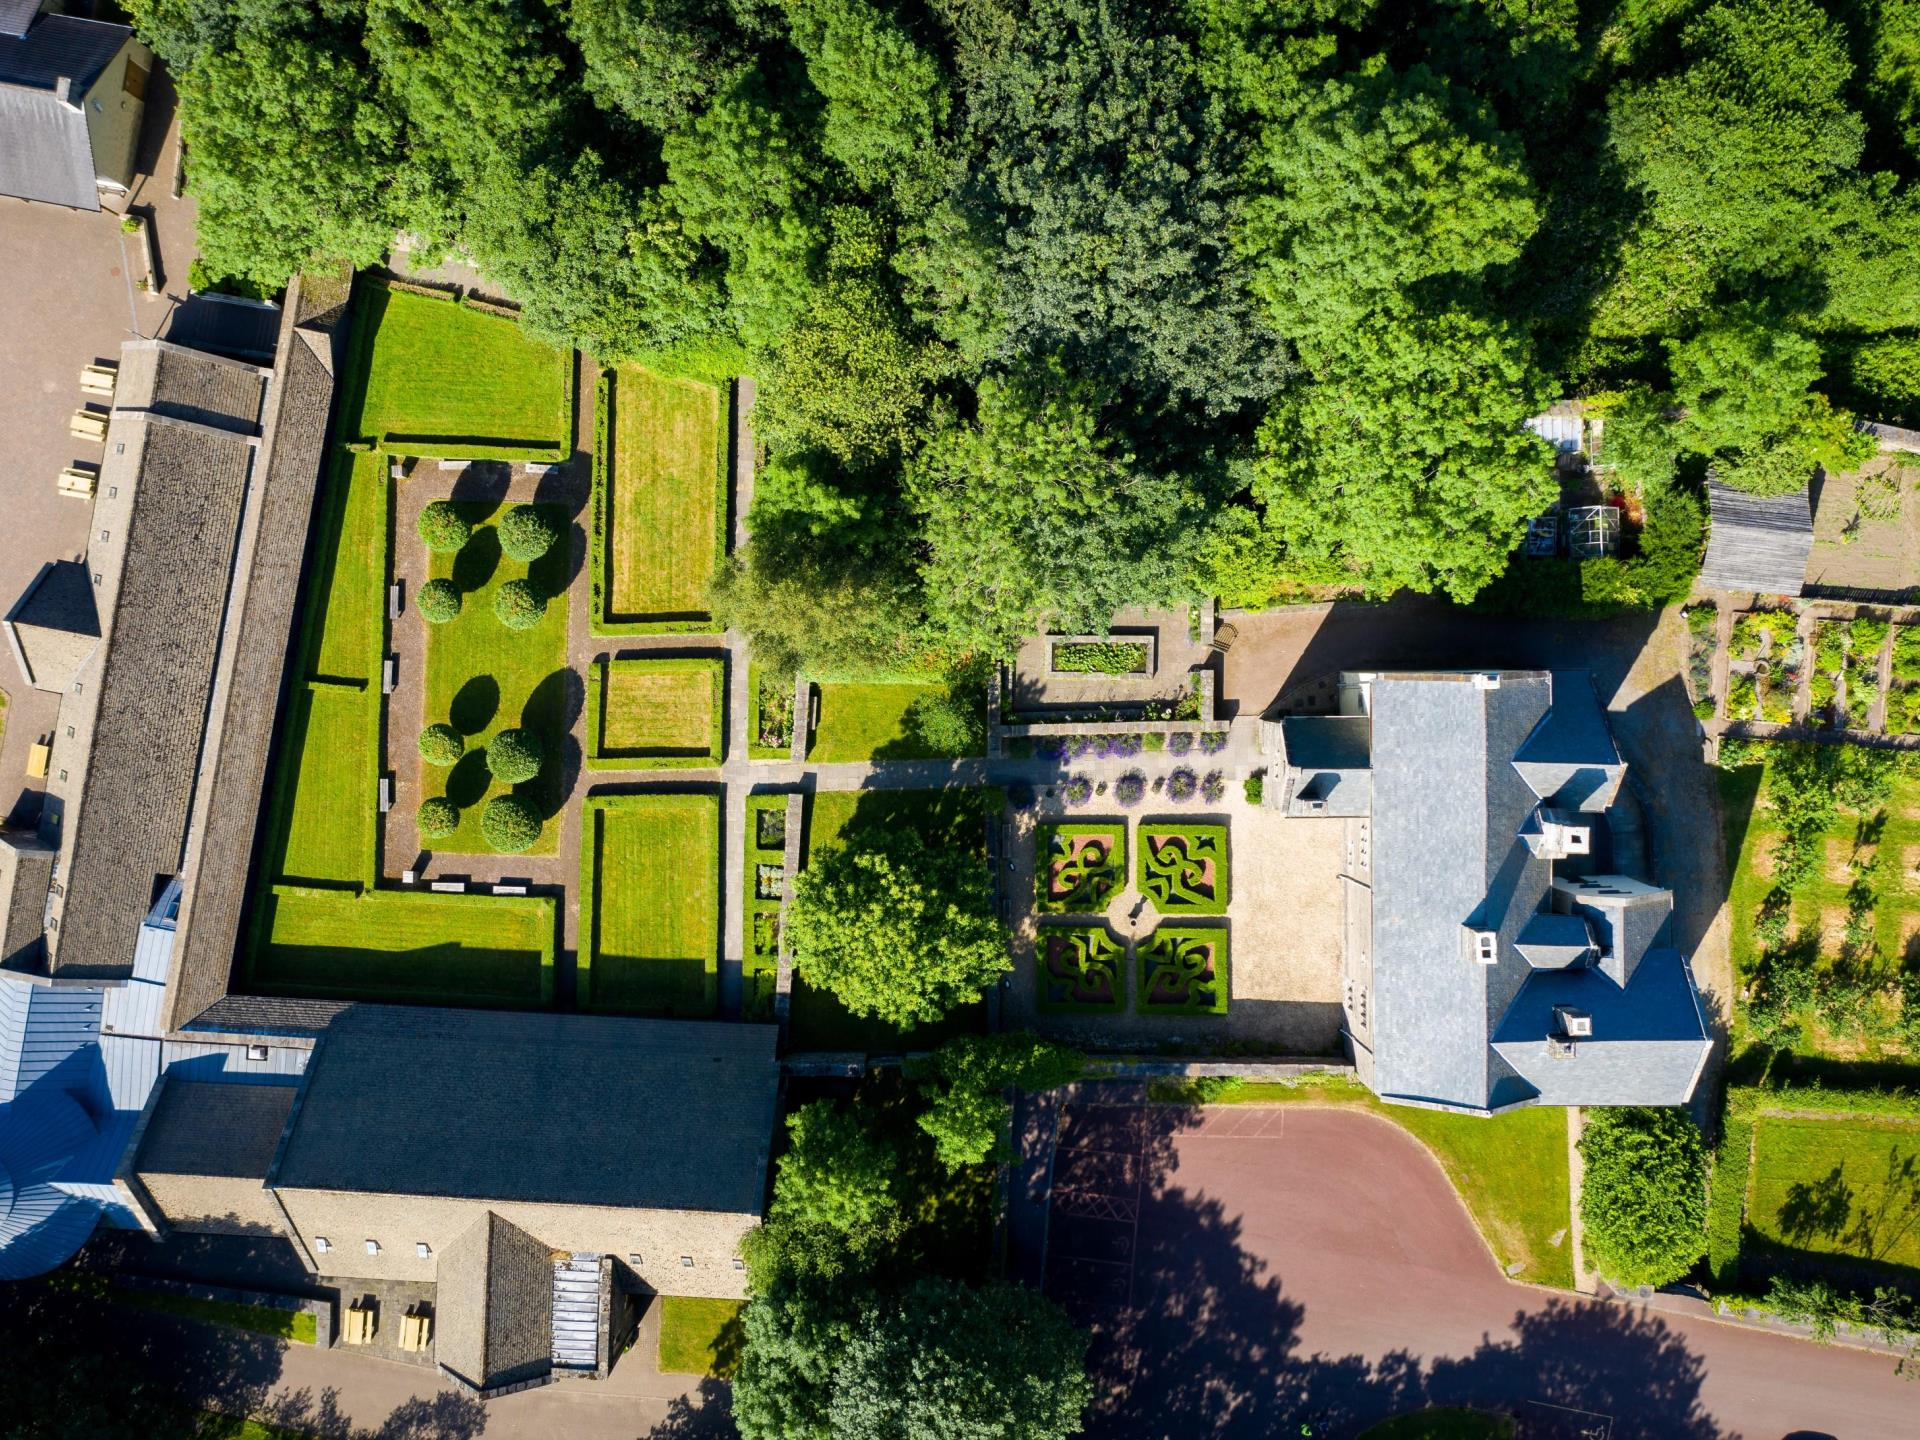 Aerial view of Llancaiach Fawr Manor and gardens